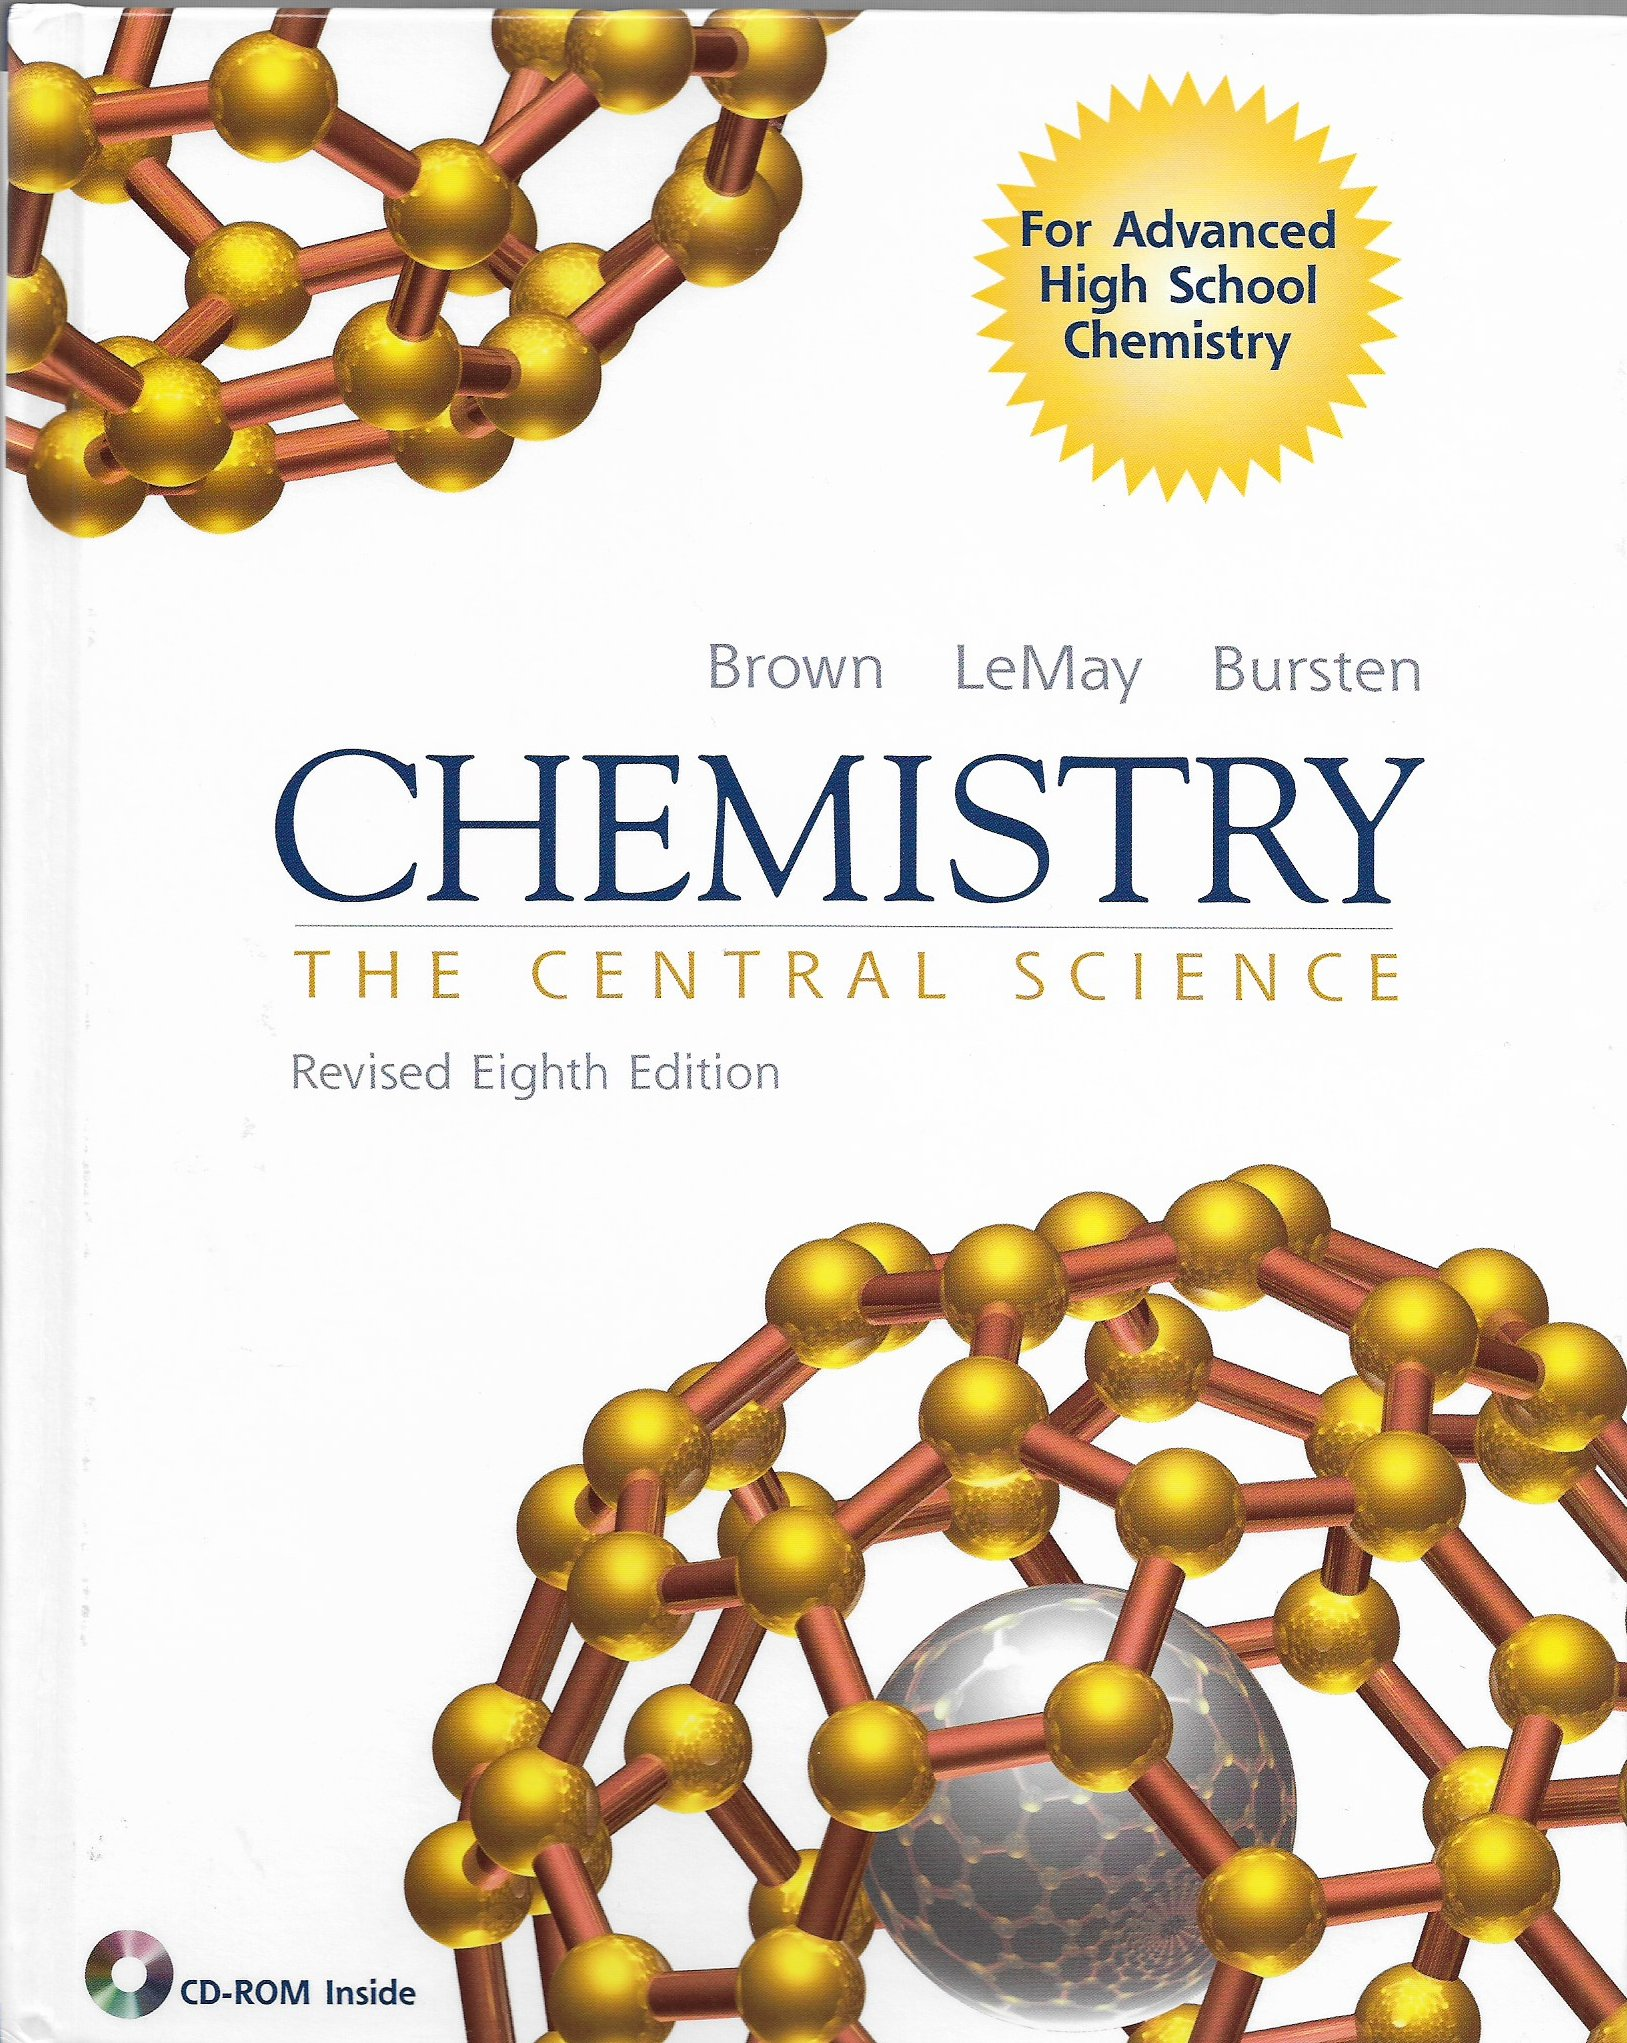 Chemistry : The Central Science: Theodore E. Brown, H. Eugene LeMay, Bruce  E. Bursten: 9780130611420: Amazon.com: Books